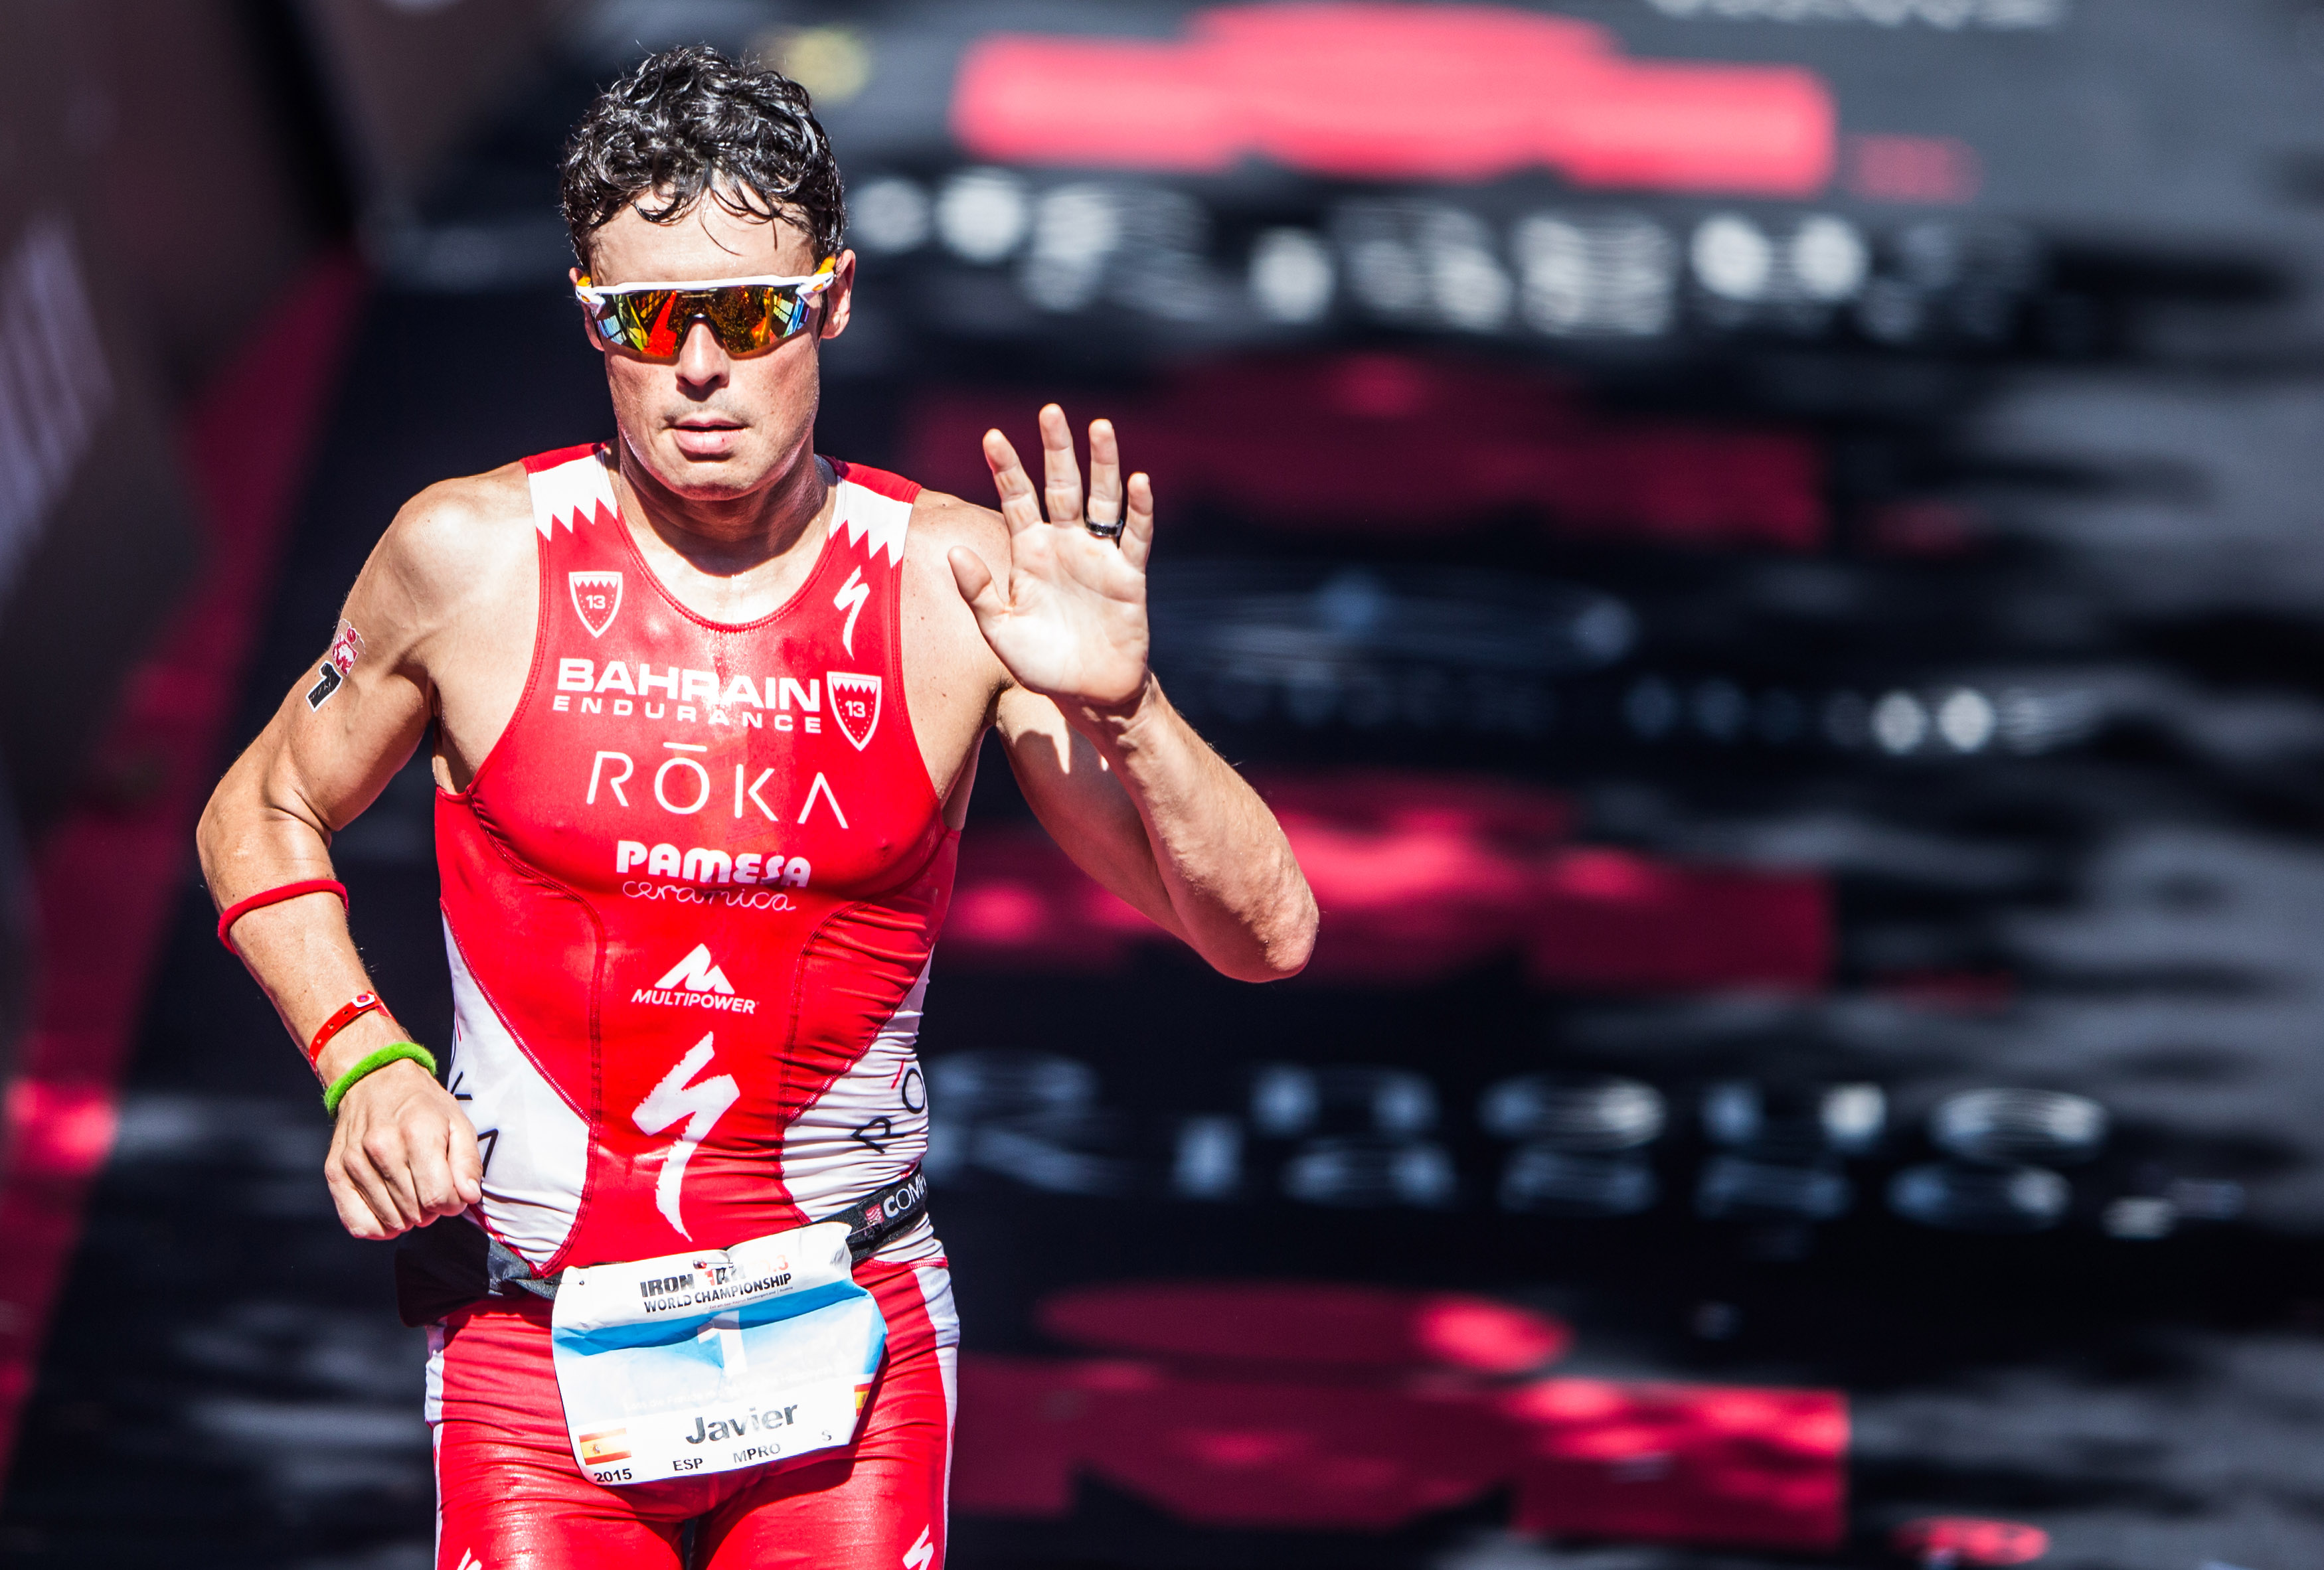 Simon Hofmann/Getty Images for Ironman